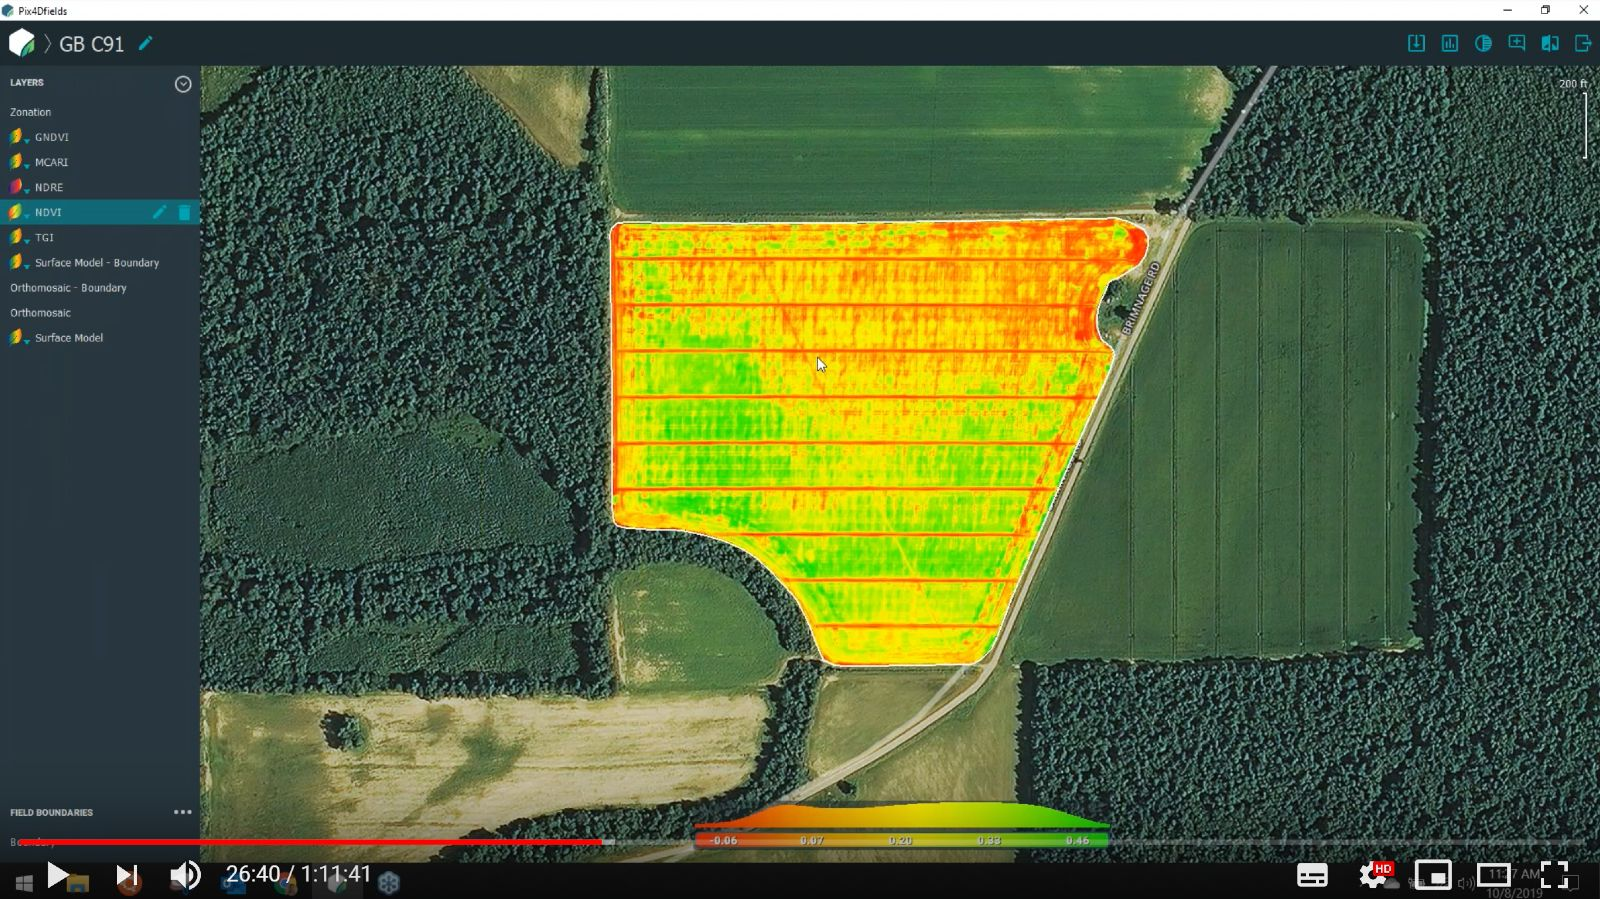 Pix4Dfields webinar digital agriculture on demand